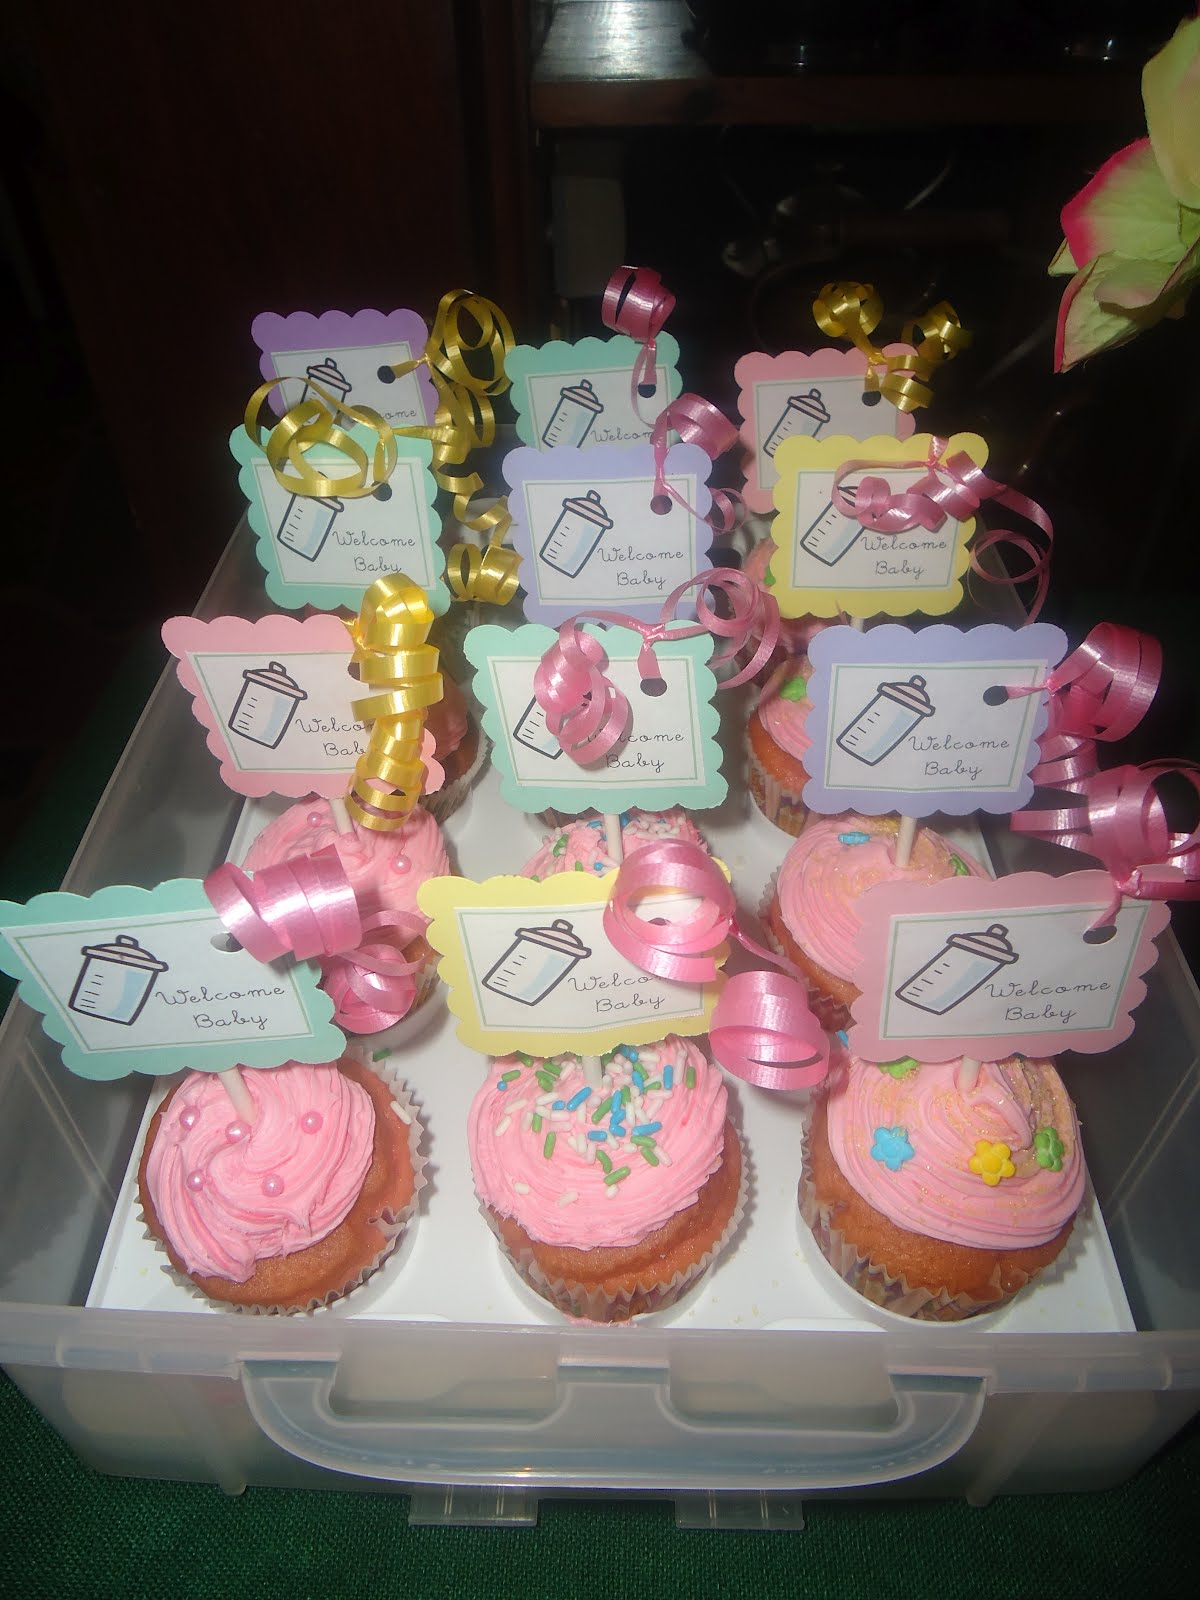 Recipe for a home girl baby shower for Cupcake recipes for baby shower girl